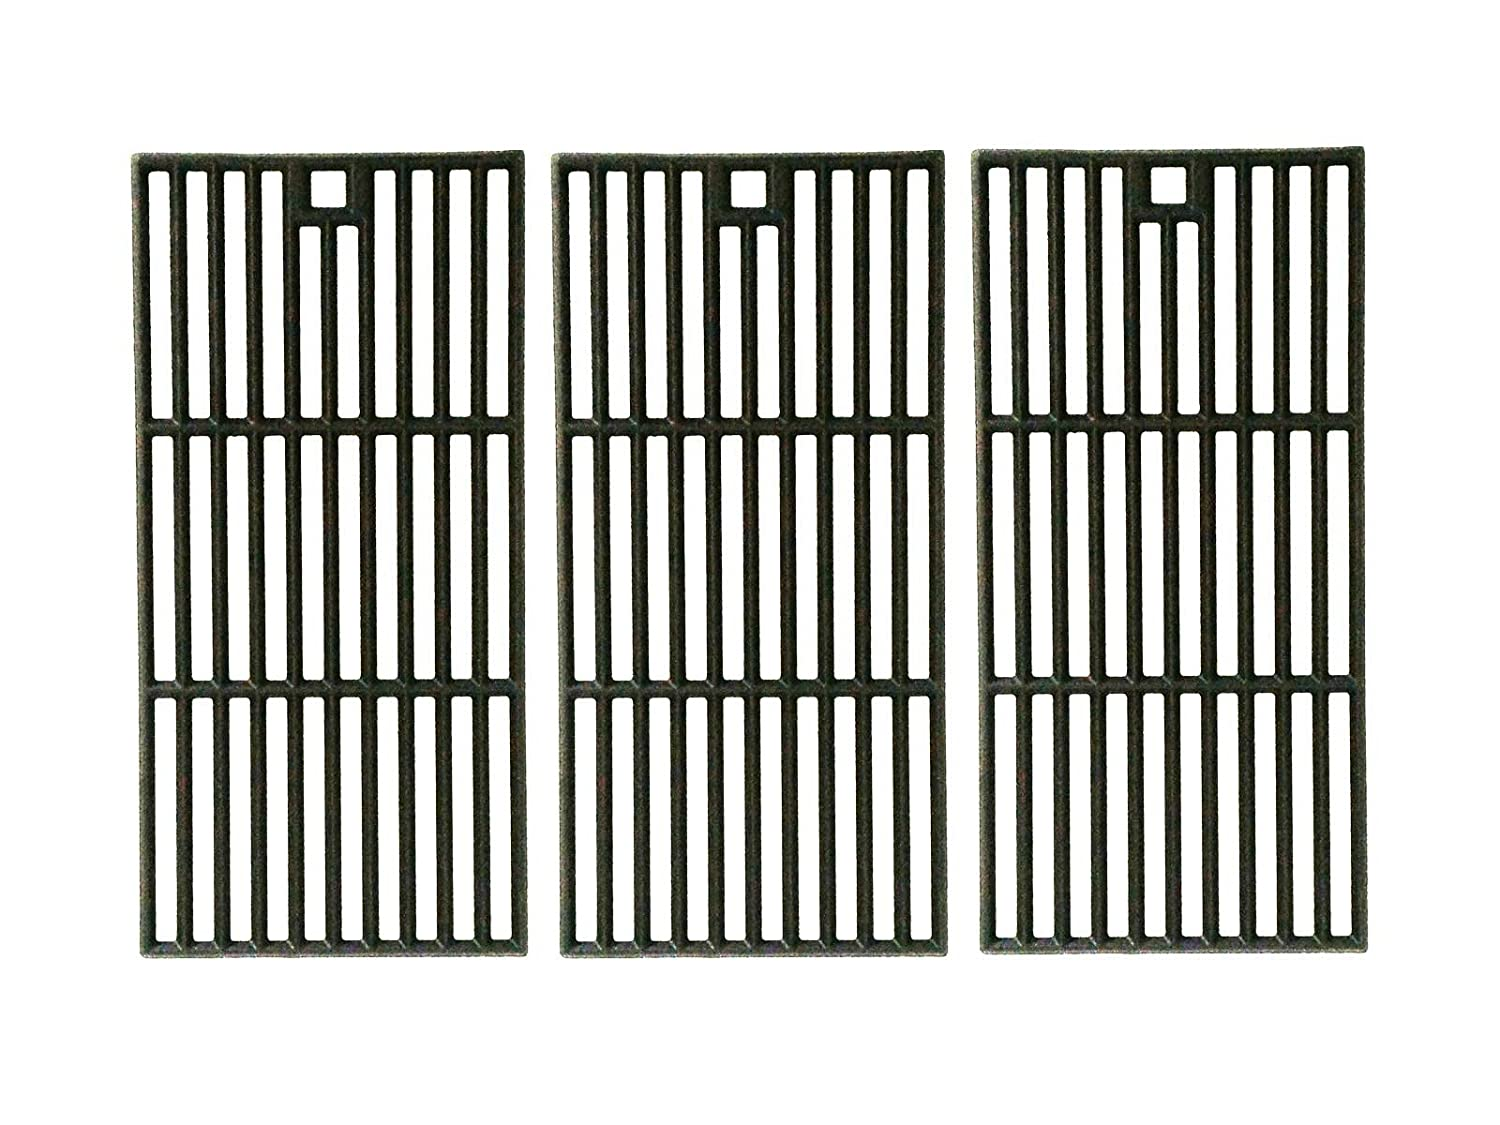 Cast Iron Cooking Grid Replacement for Broil-King, Centro, Charbroil, Kenmore 415.16123801, Coleman, Kirland, and Kmart 640-641215405 Gas Grill Models, Set of 3 bbqGrillParts